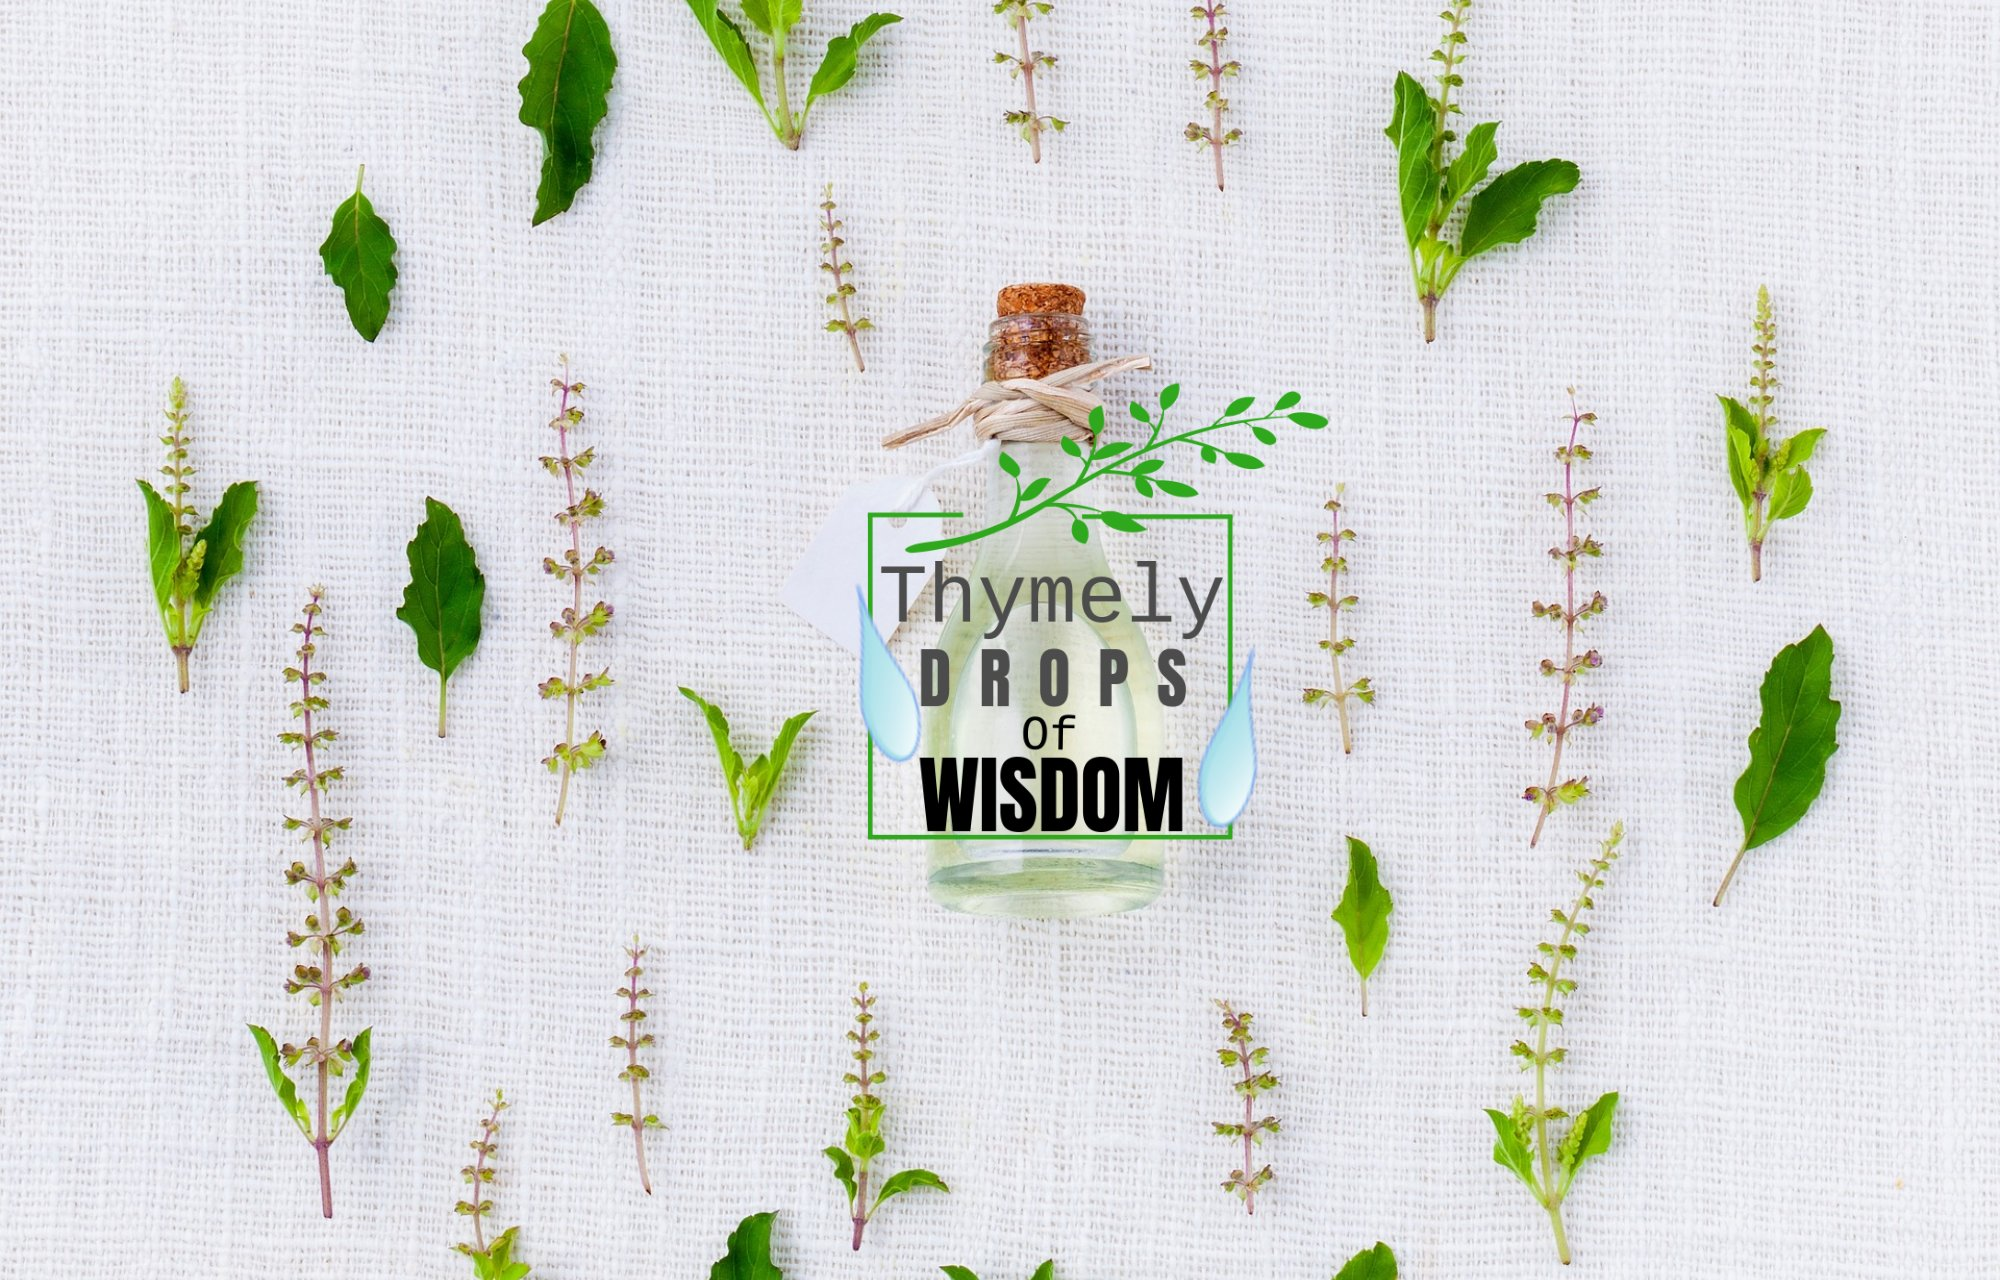 Thymely Drops of Wisdom - Join my facebook page for more information about using essential oils and herbs to support your health.